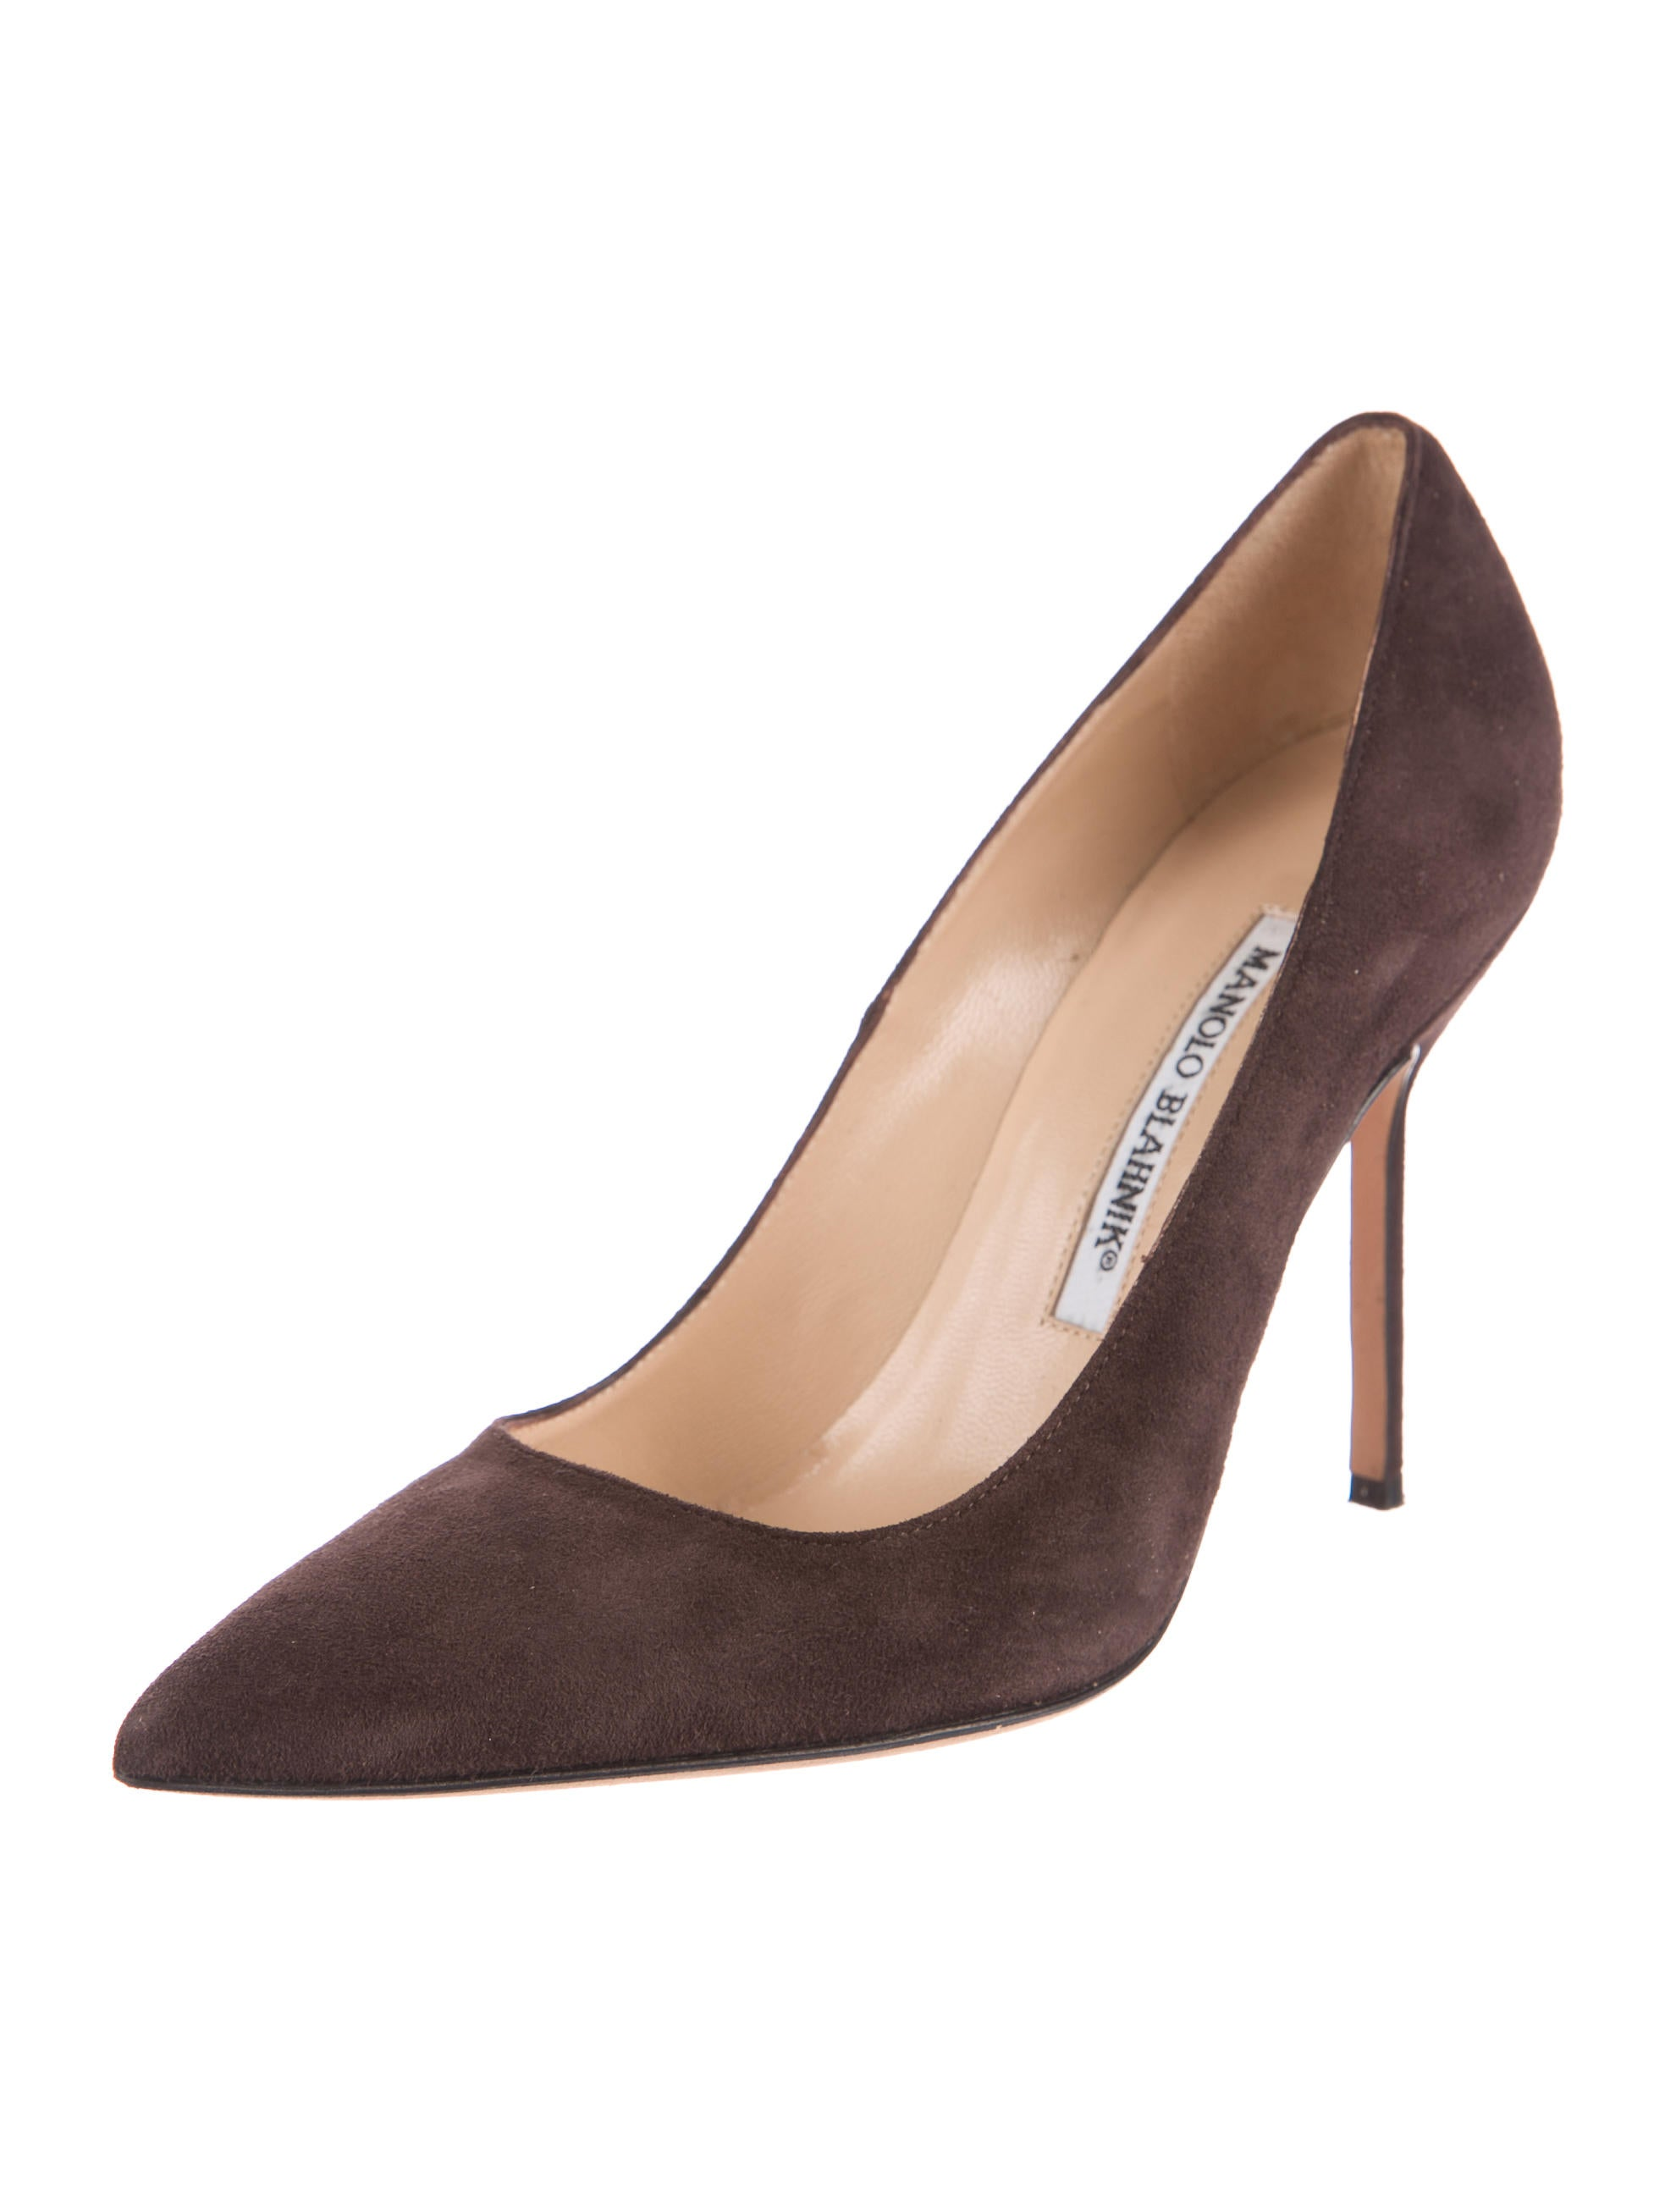 Manolo blahnik suede pointed toe pumps shoes moo72174 for Shoes by manolo blahnik